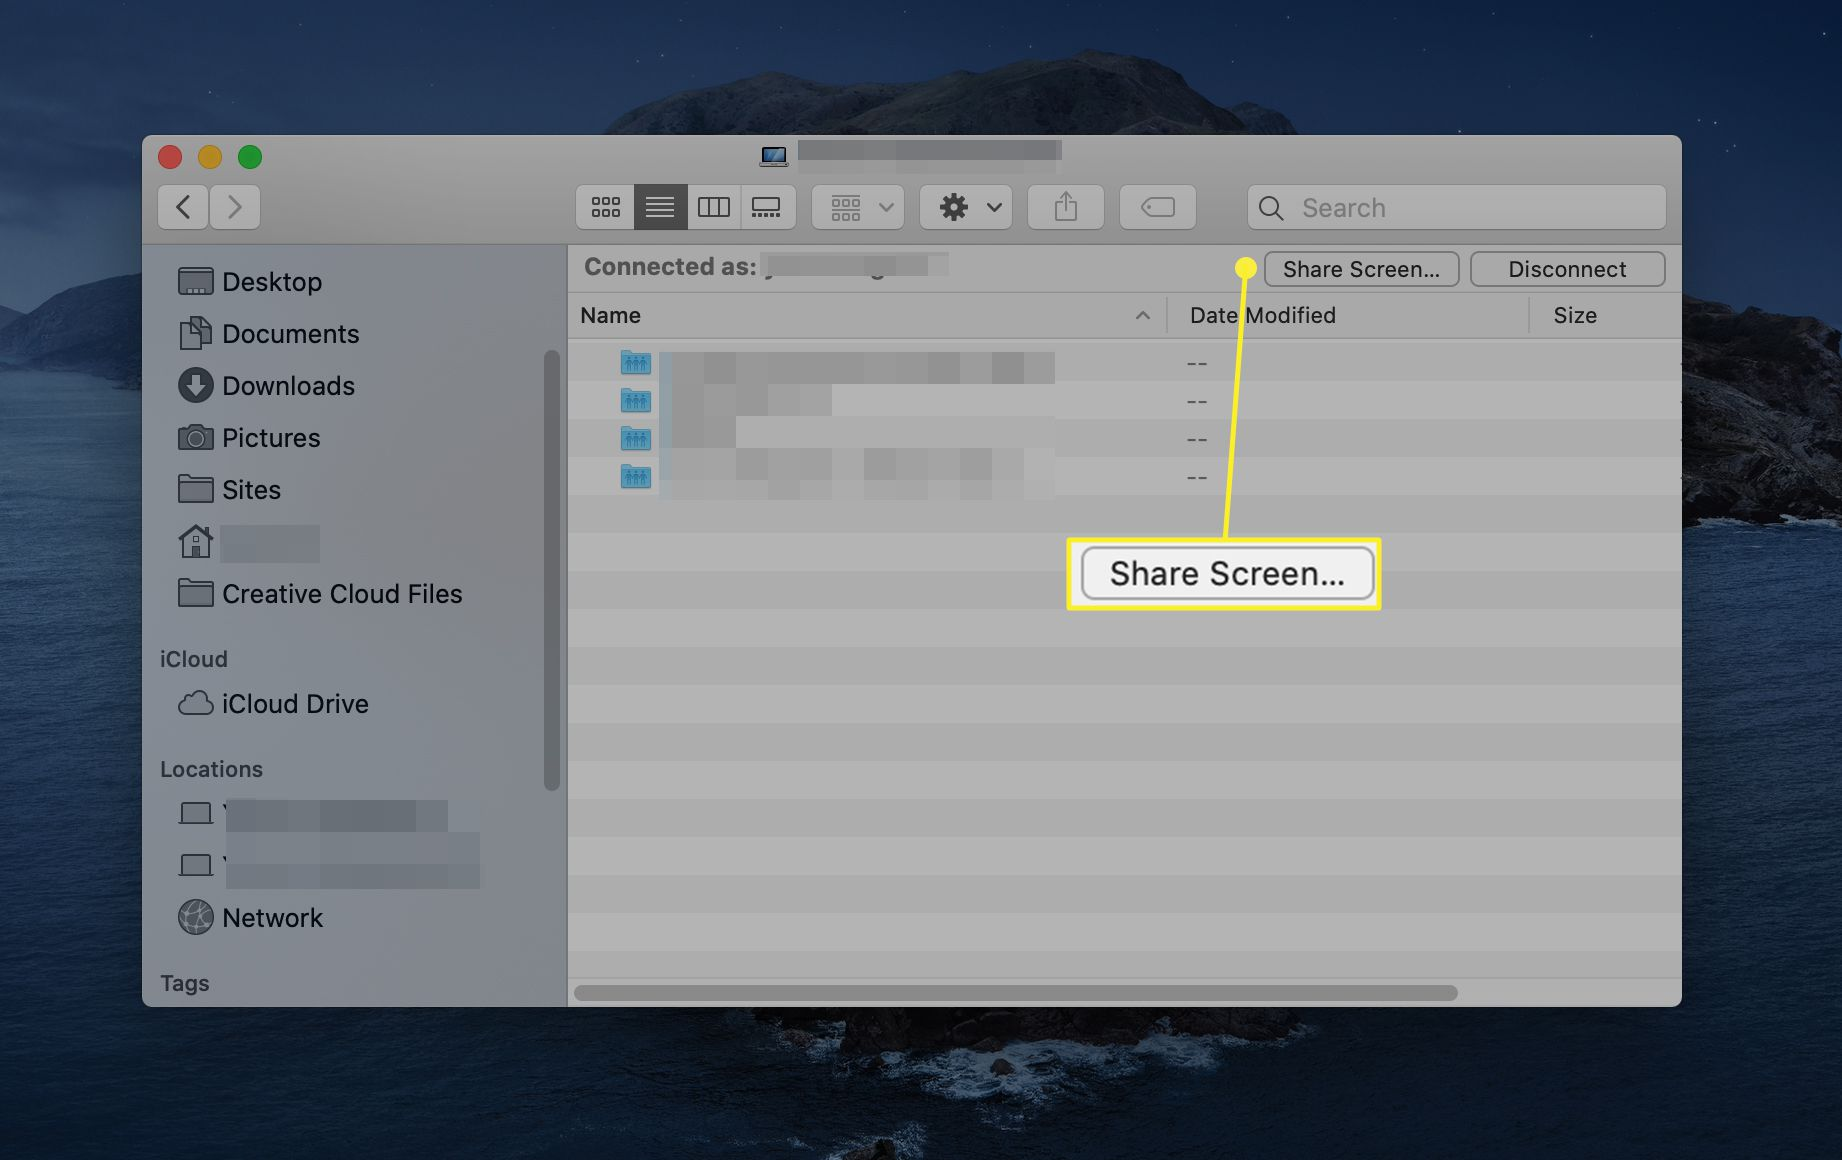 Share Screen button from Finder window between two connected Macs